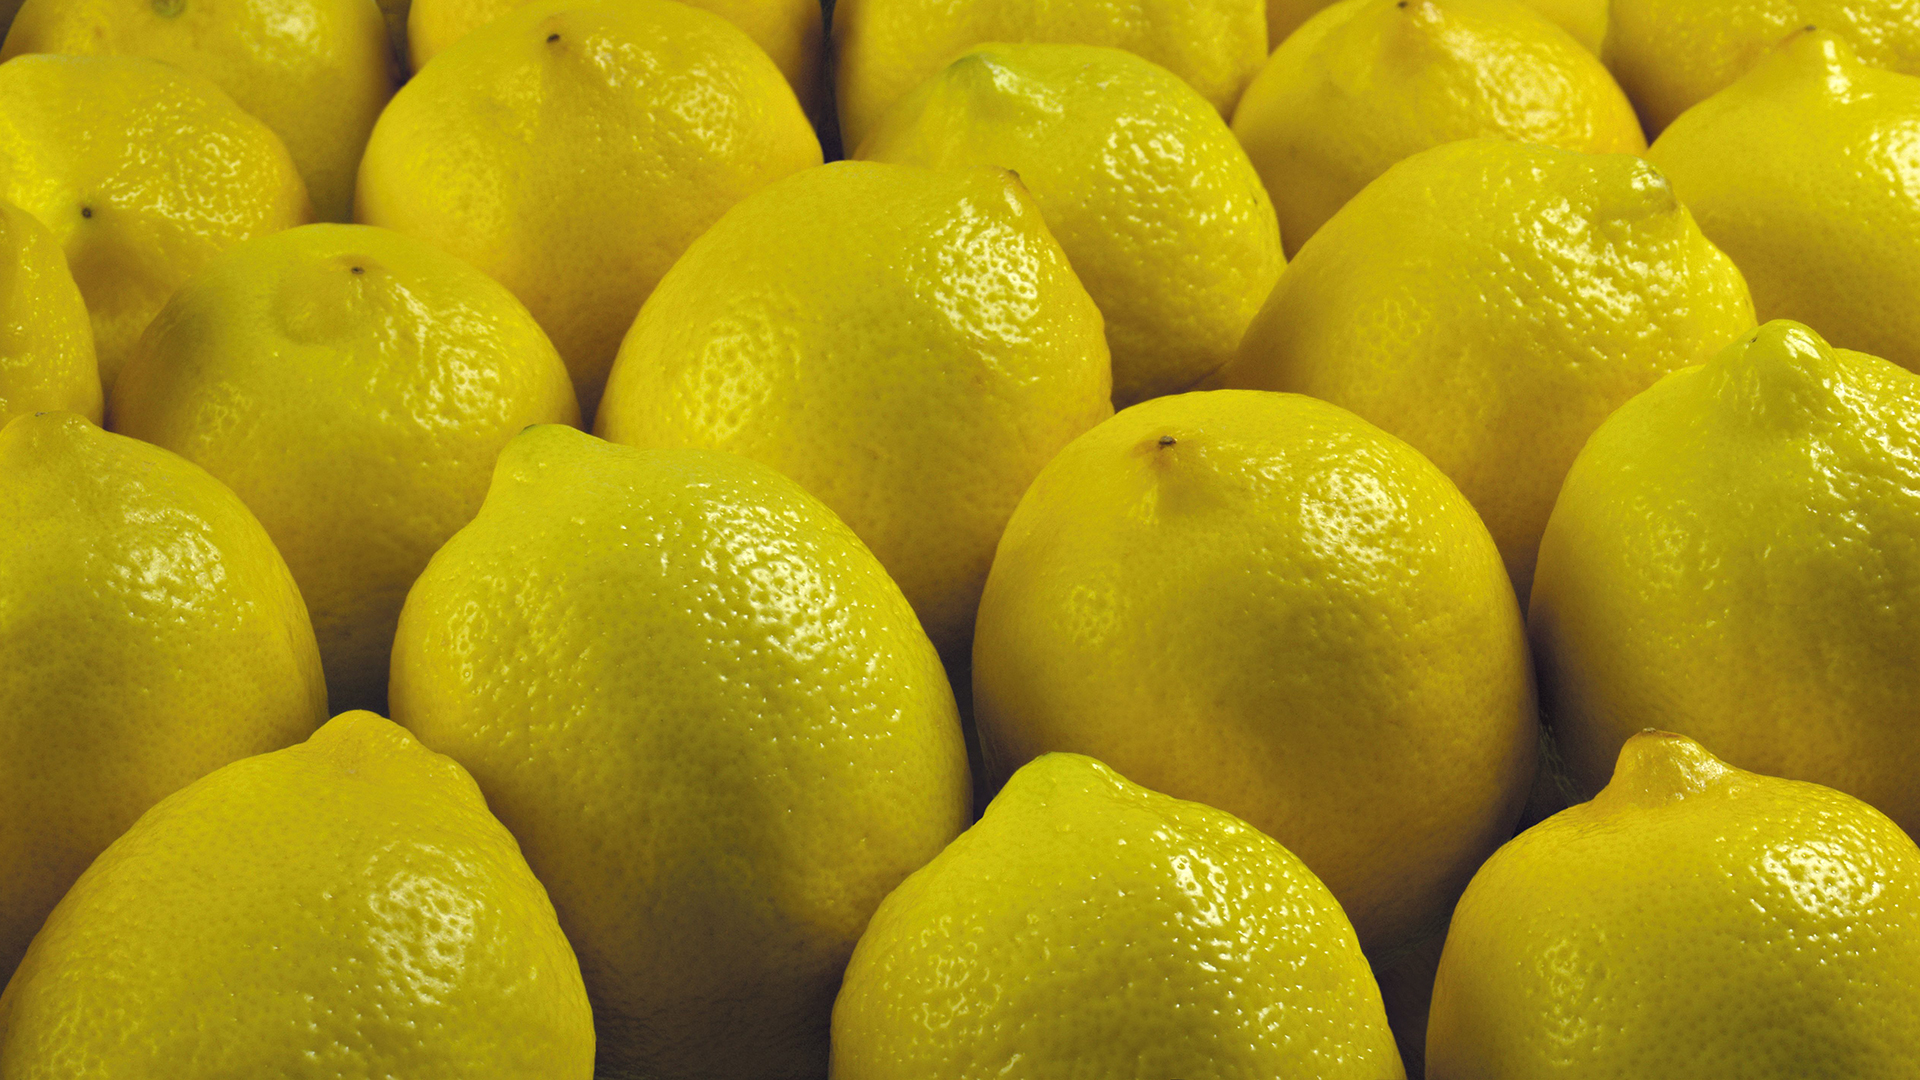 Lemon Computer Wallpapers, Desktop Backgrounds | 1920x1080 ...